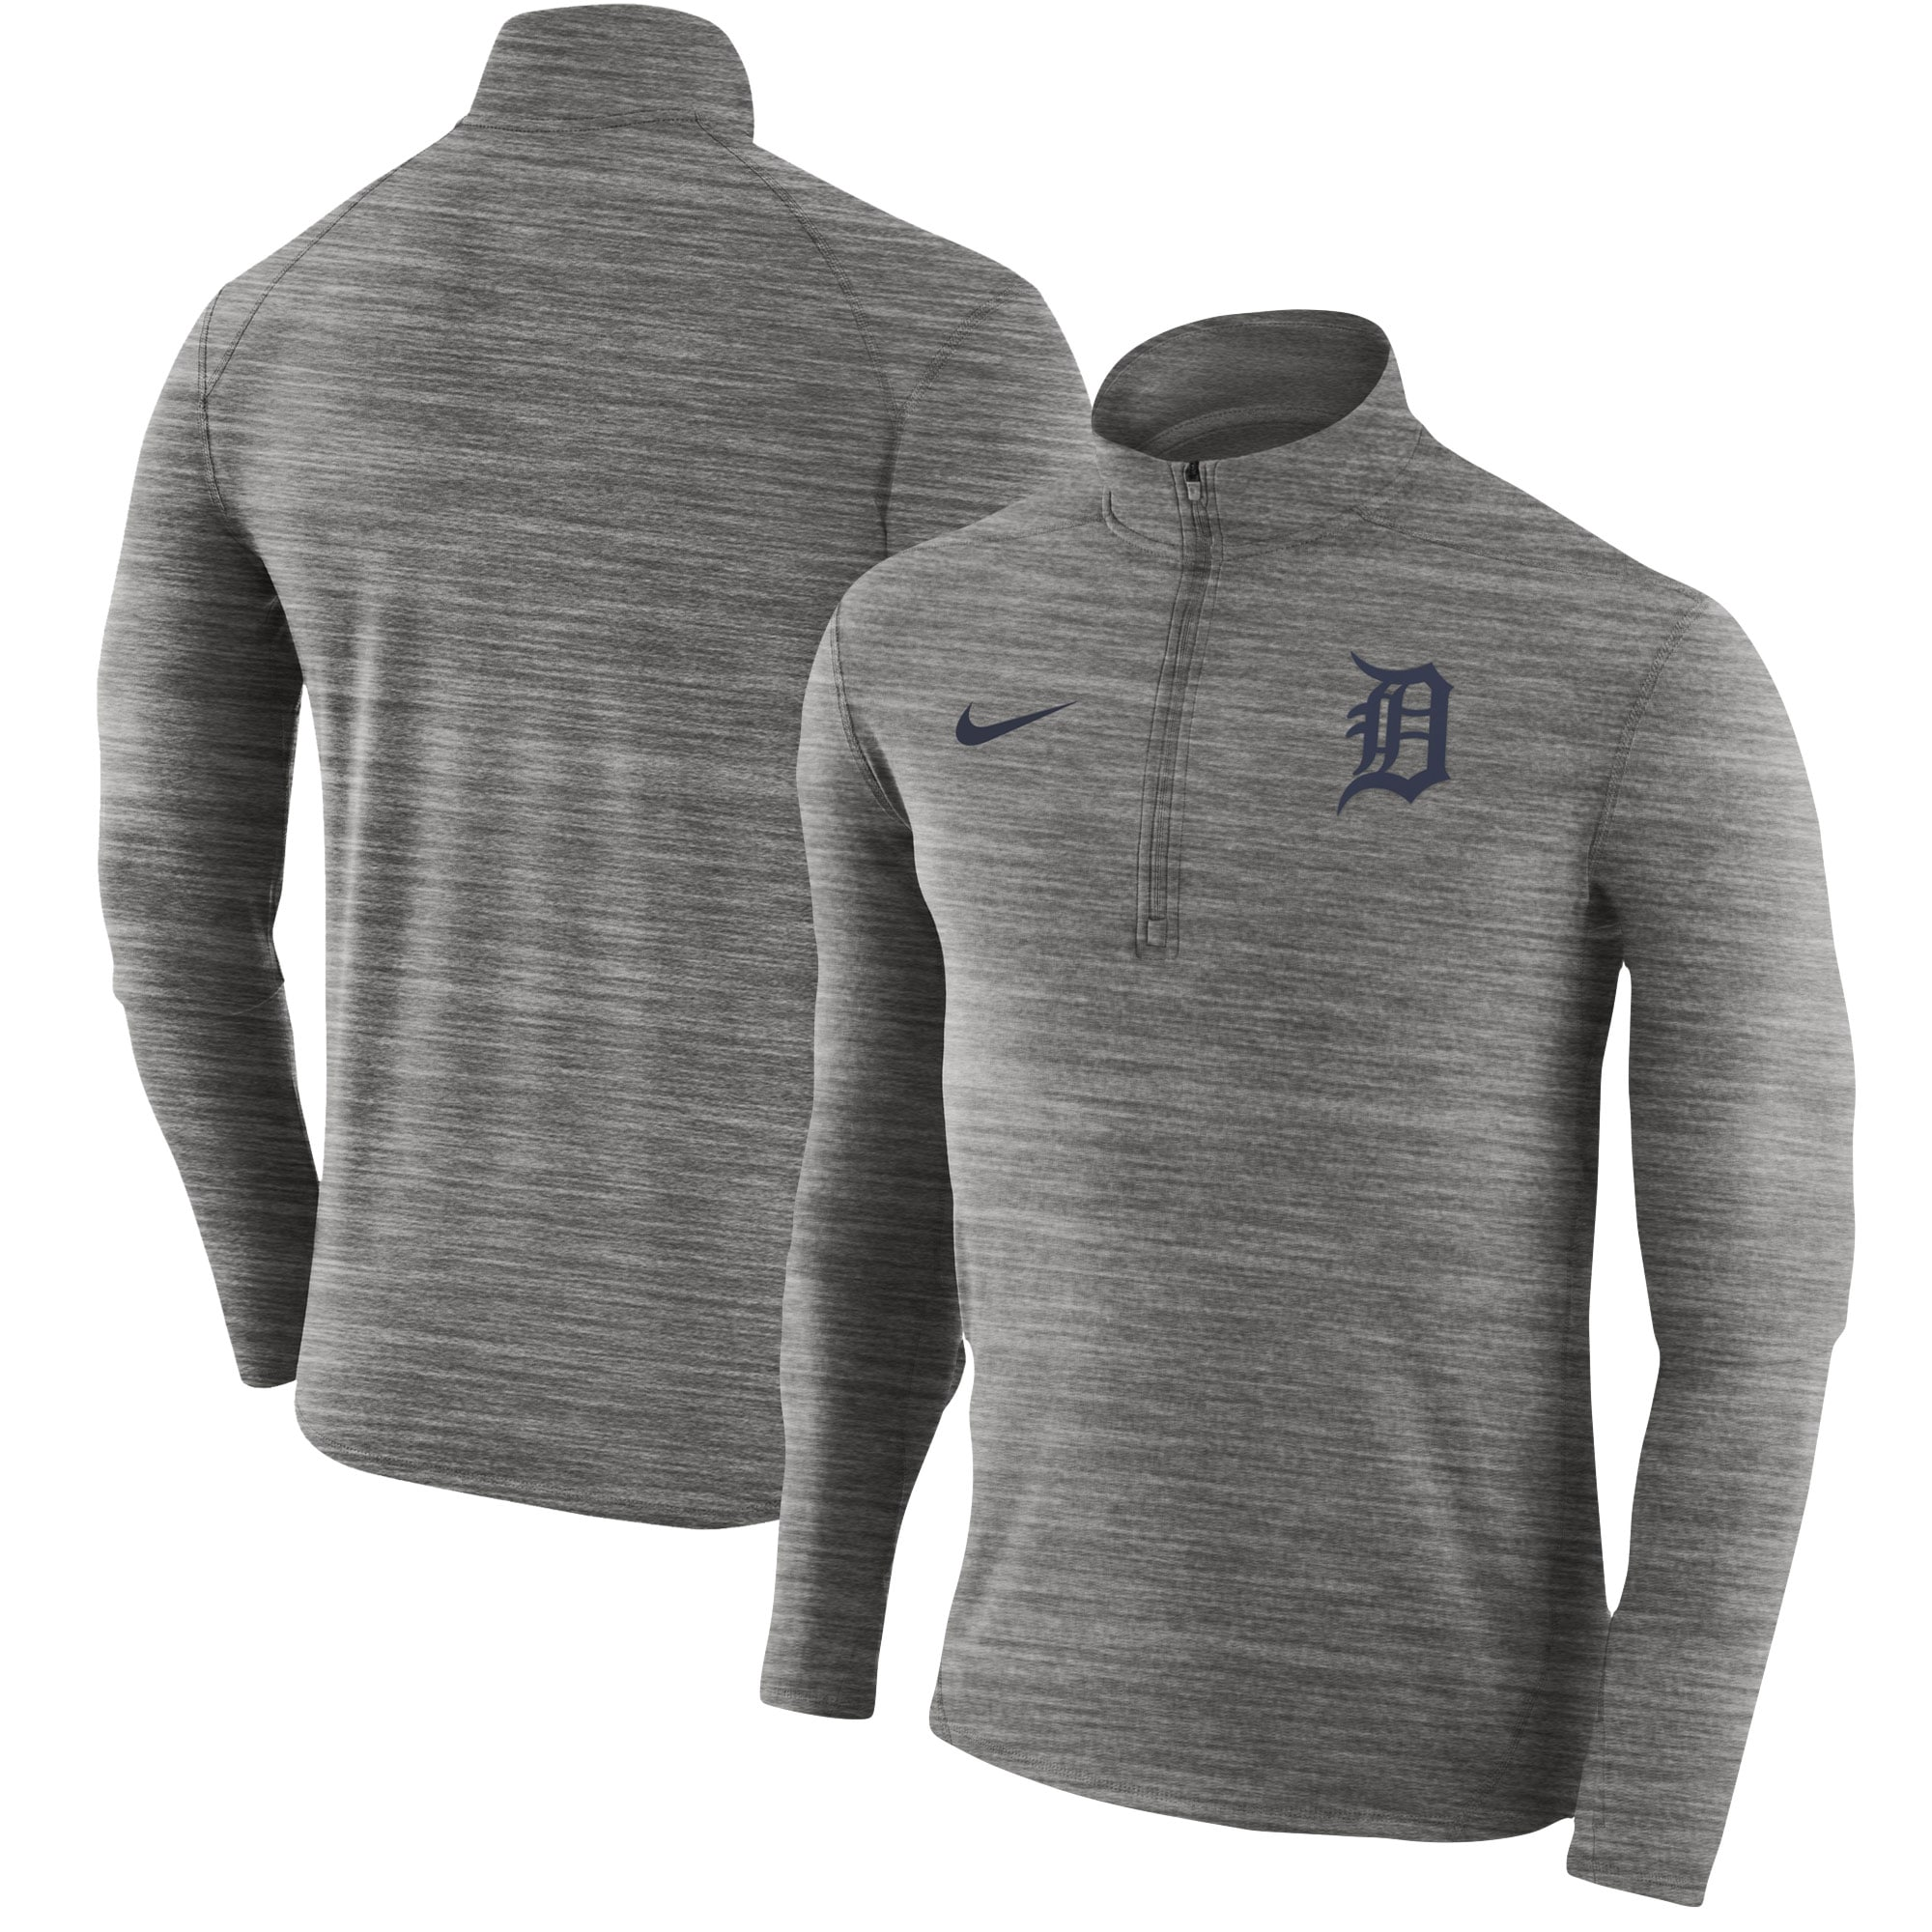 Detroit Tigers Nike Element Half-Zip Performance Top - Heathered Gray